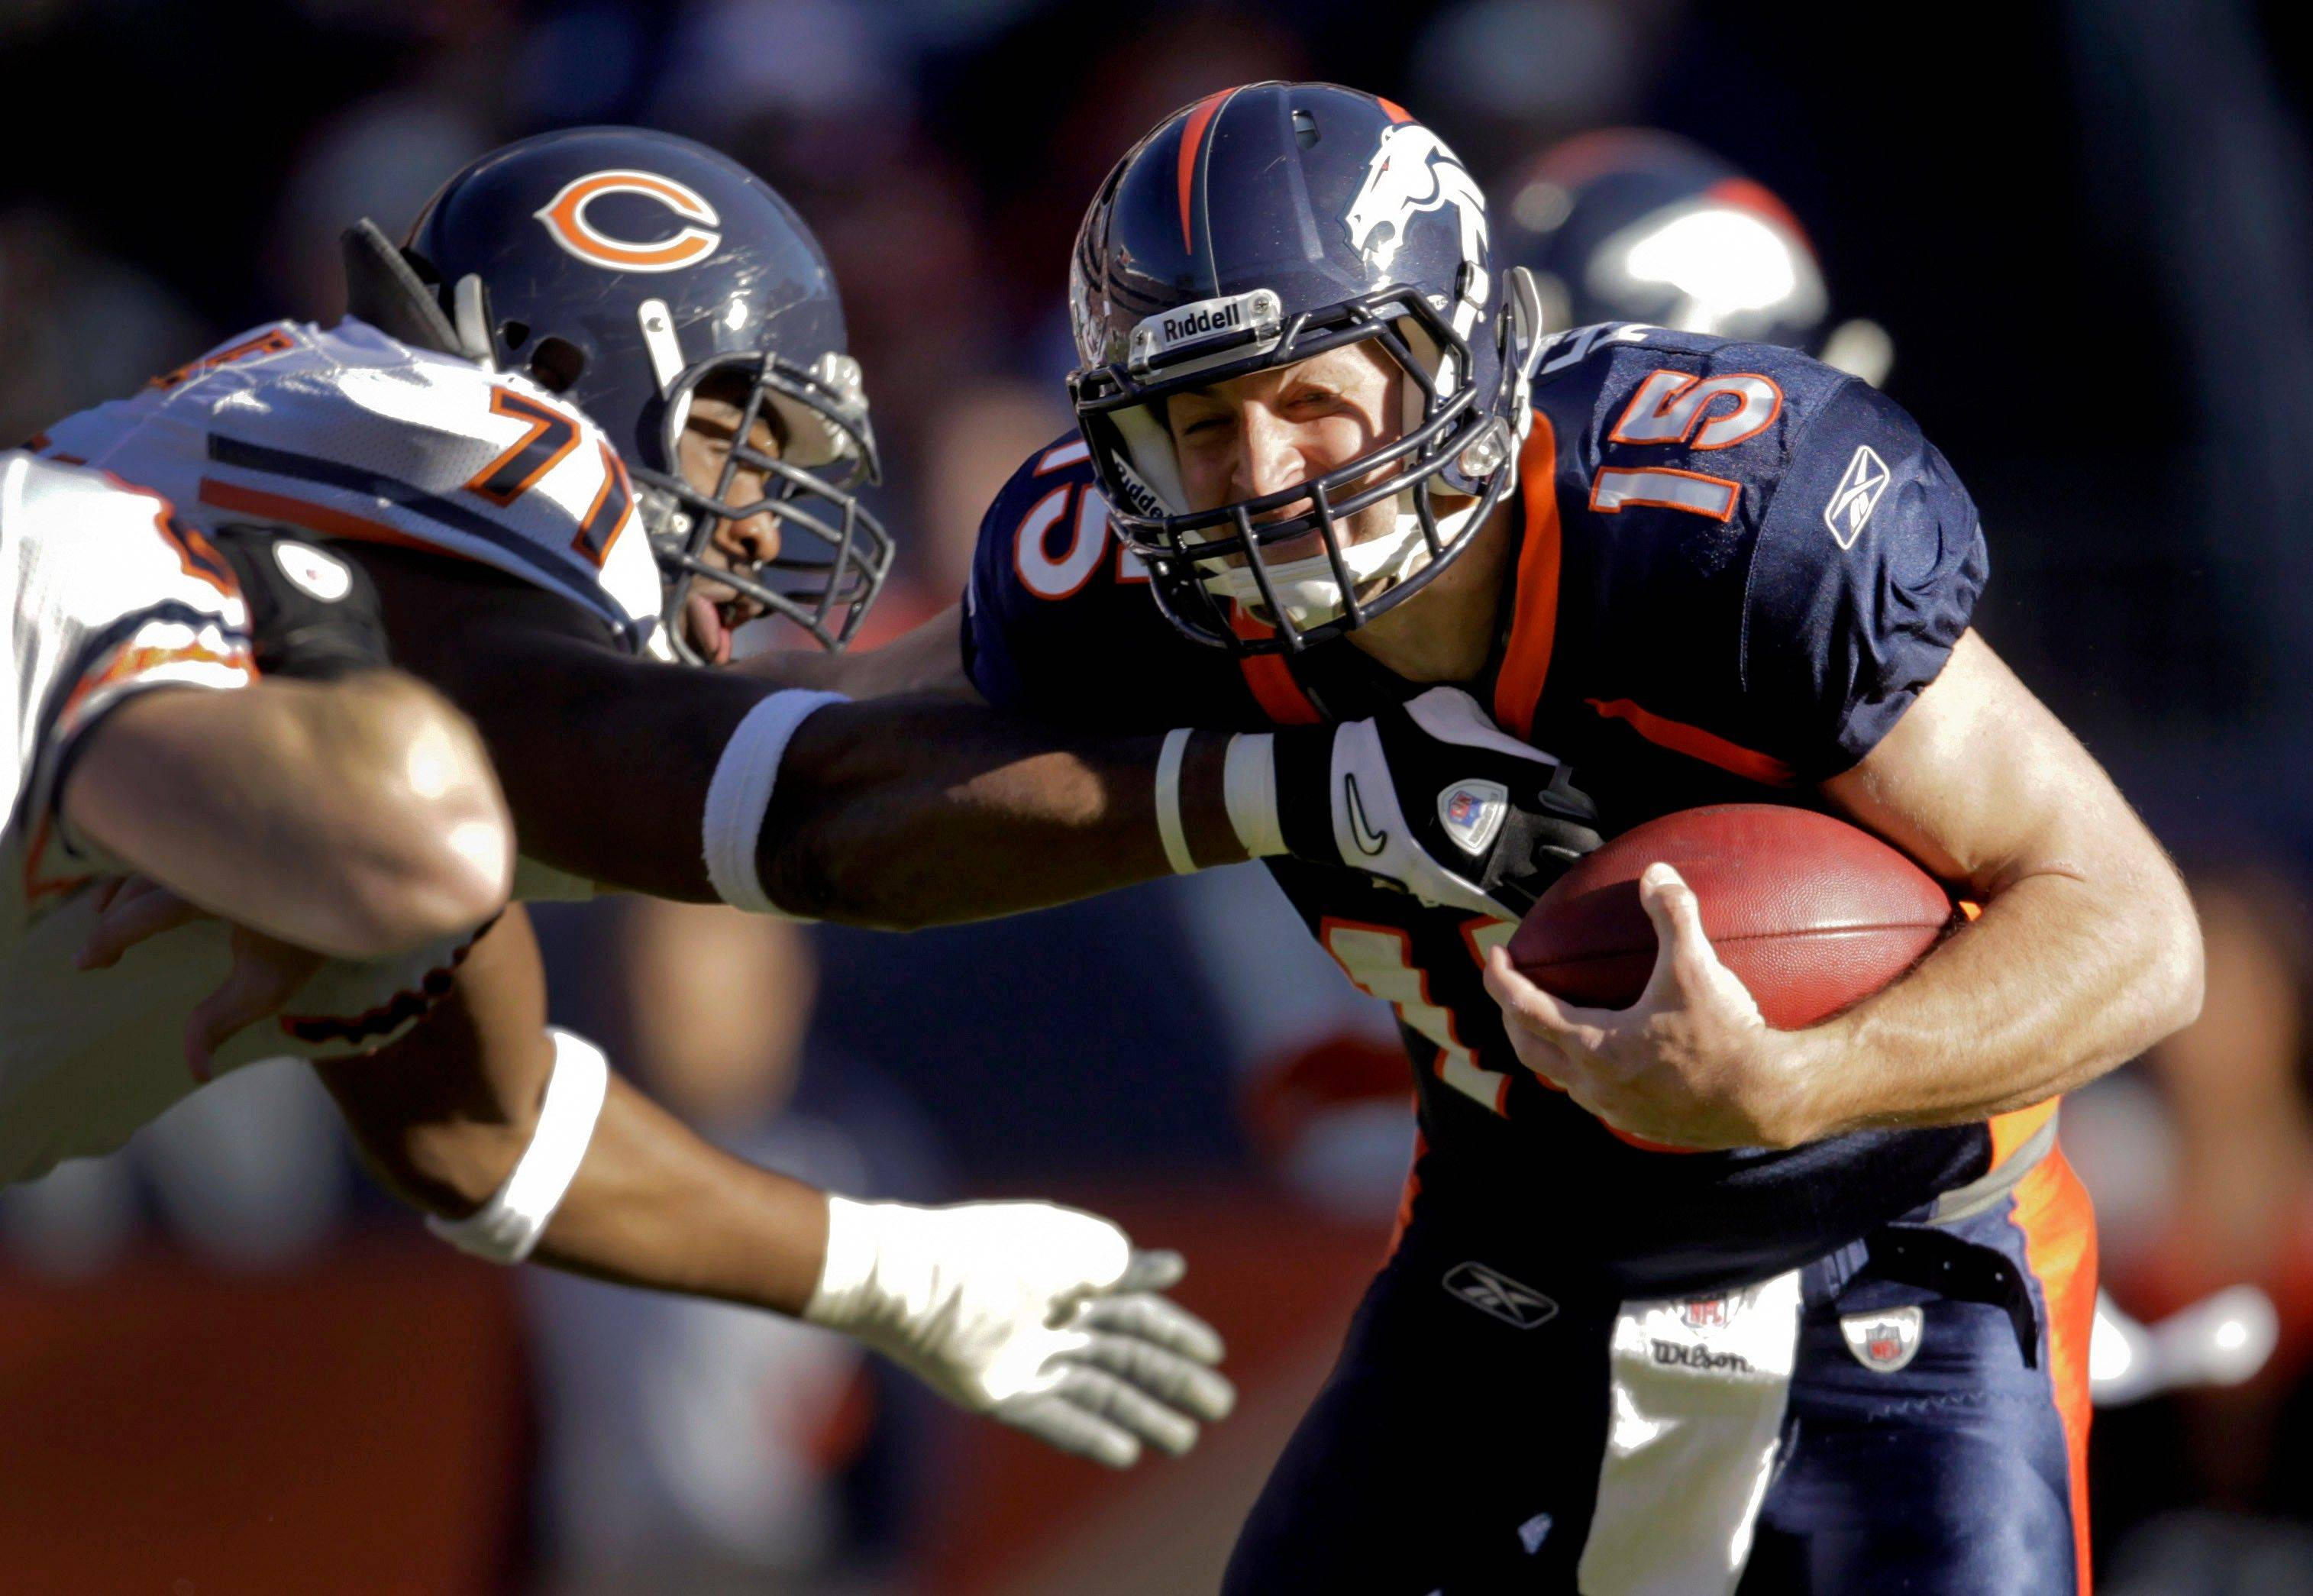 Denver Broncos quarterback Tim Tebow (15) stiff-arms Chicago Bears defensive end Israel Idonije (71) in the first quarter,